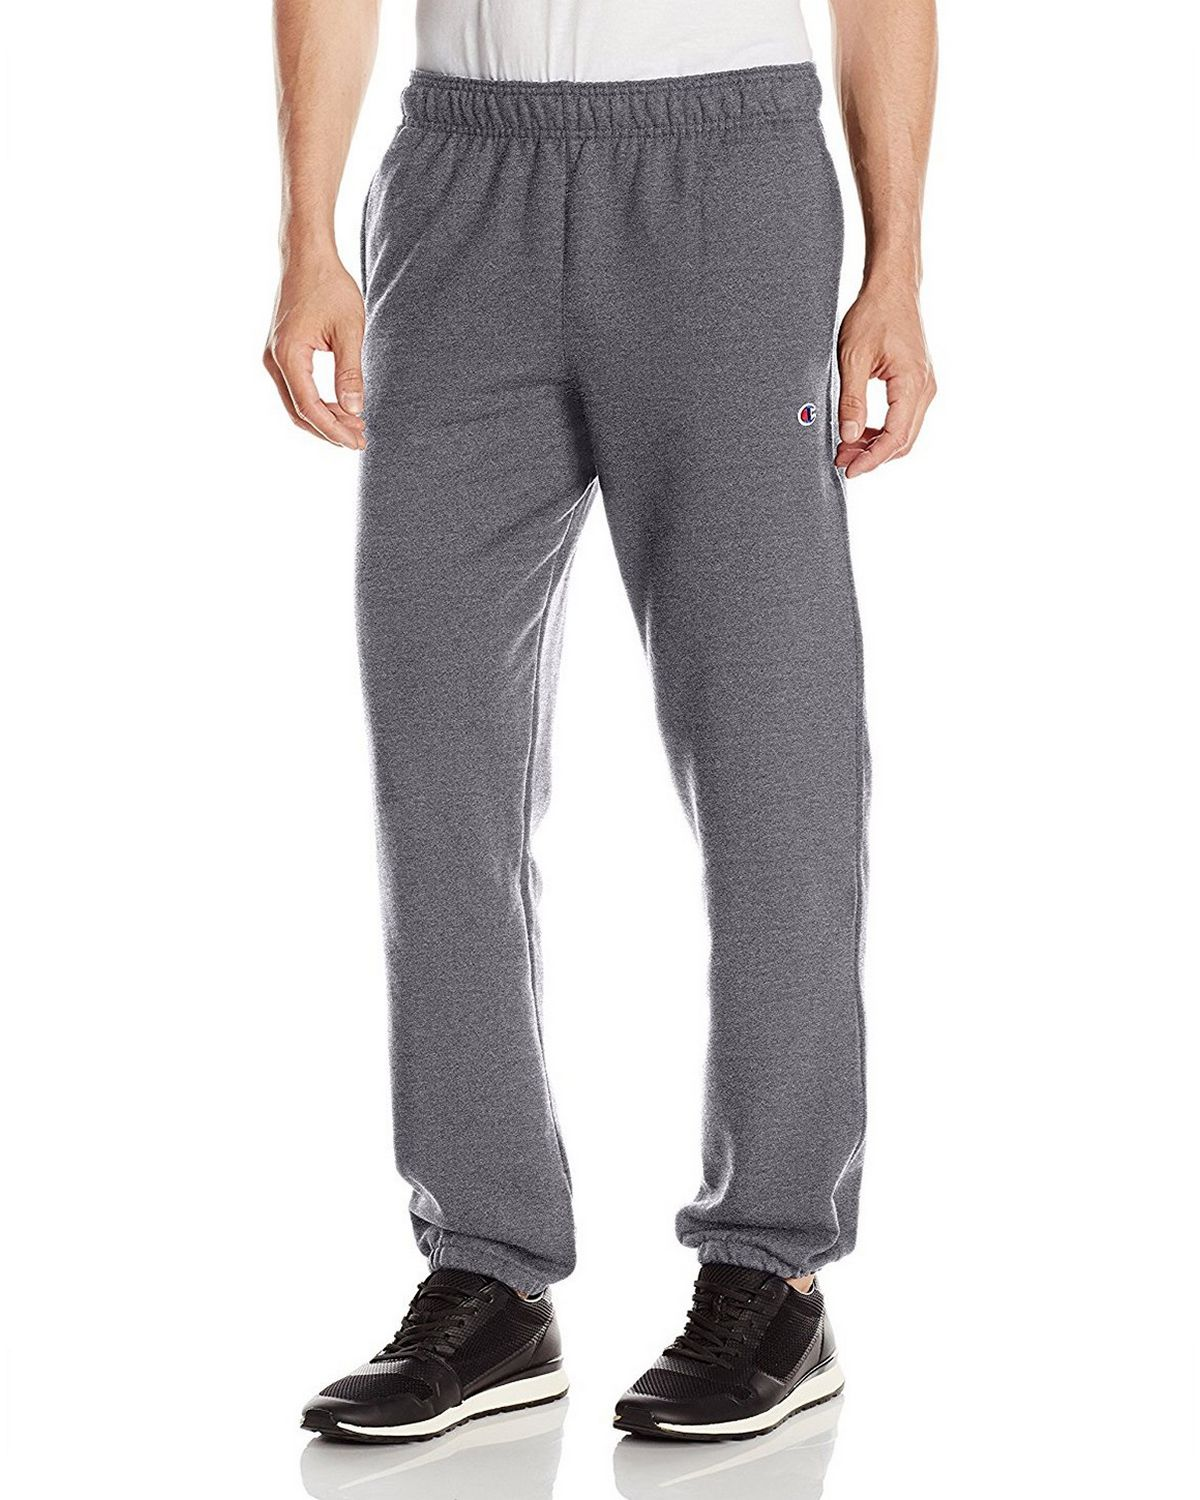 Champion P0894 Mens Powerblend Fleece Pants - Granite Heather - S P0894